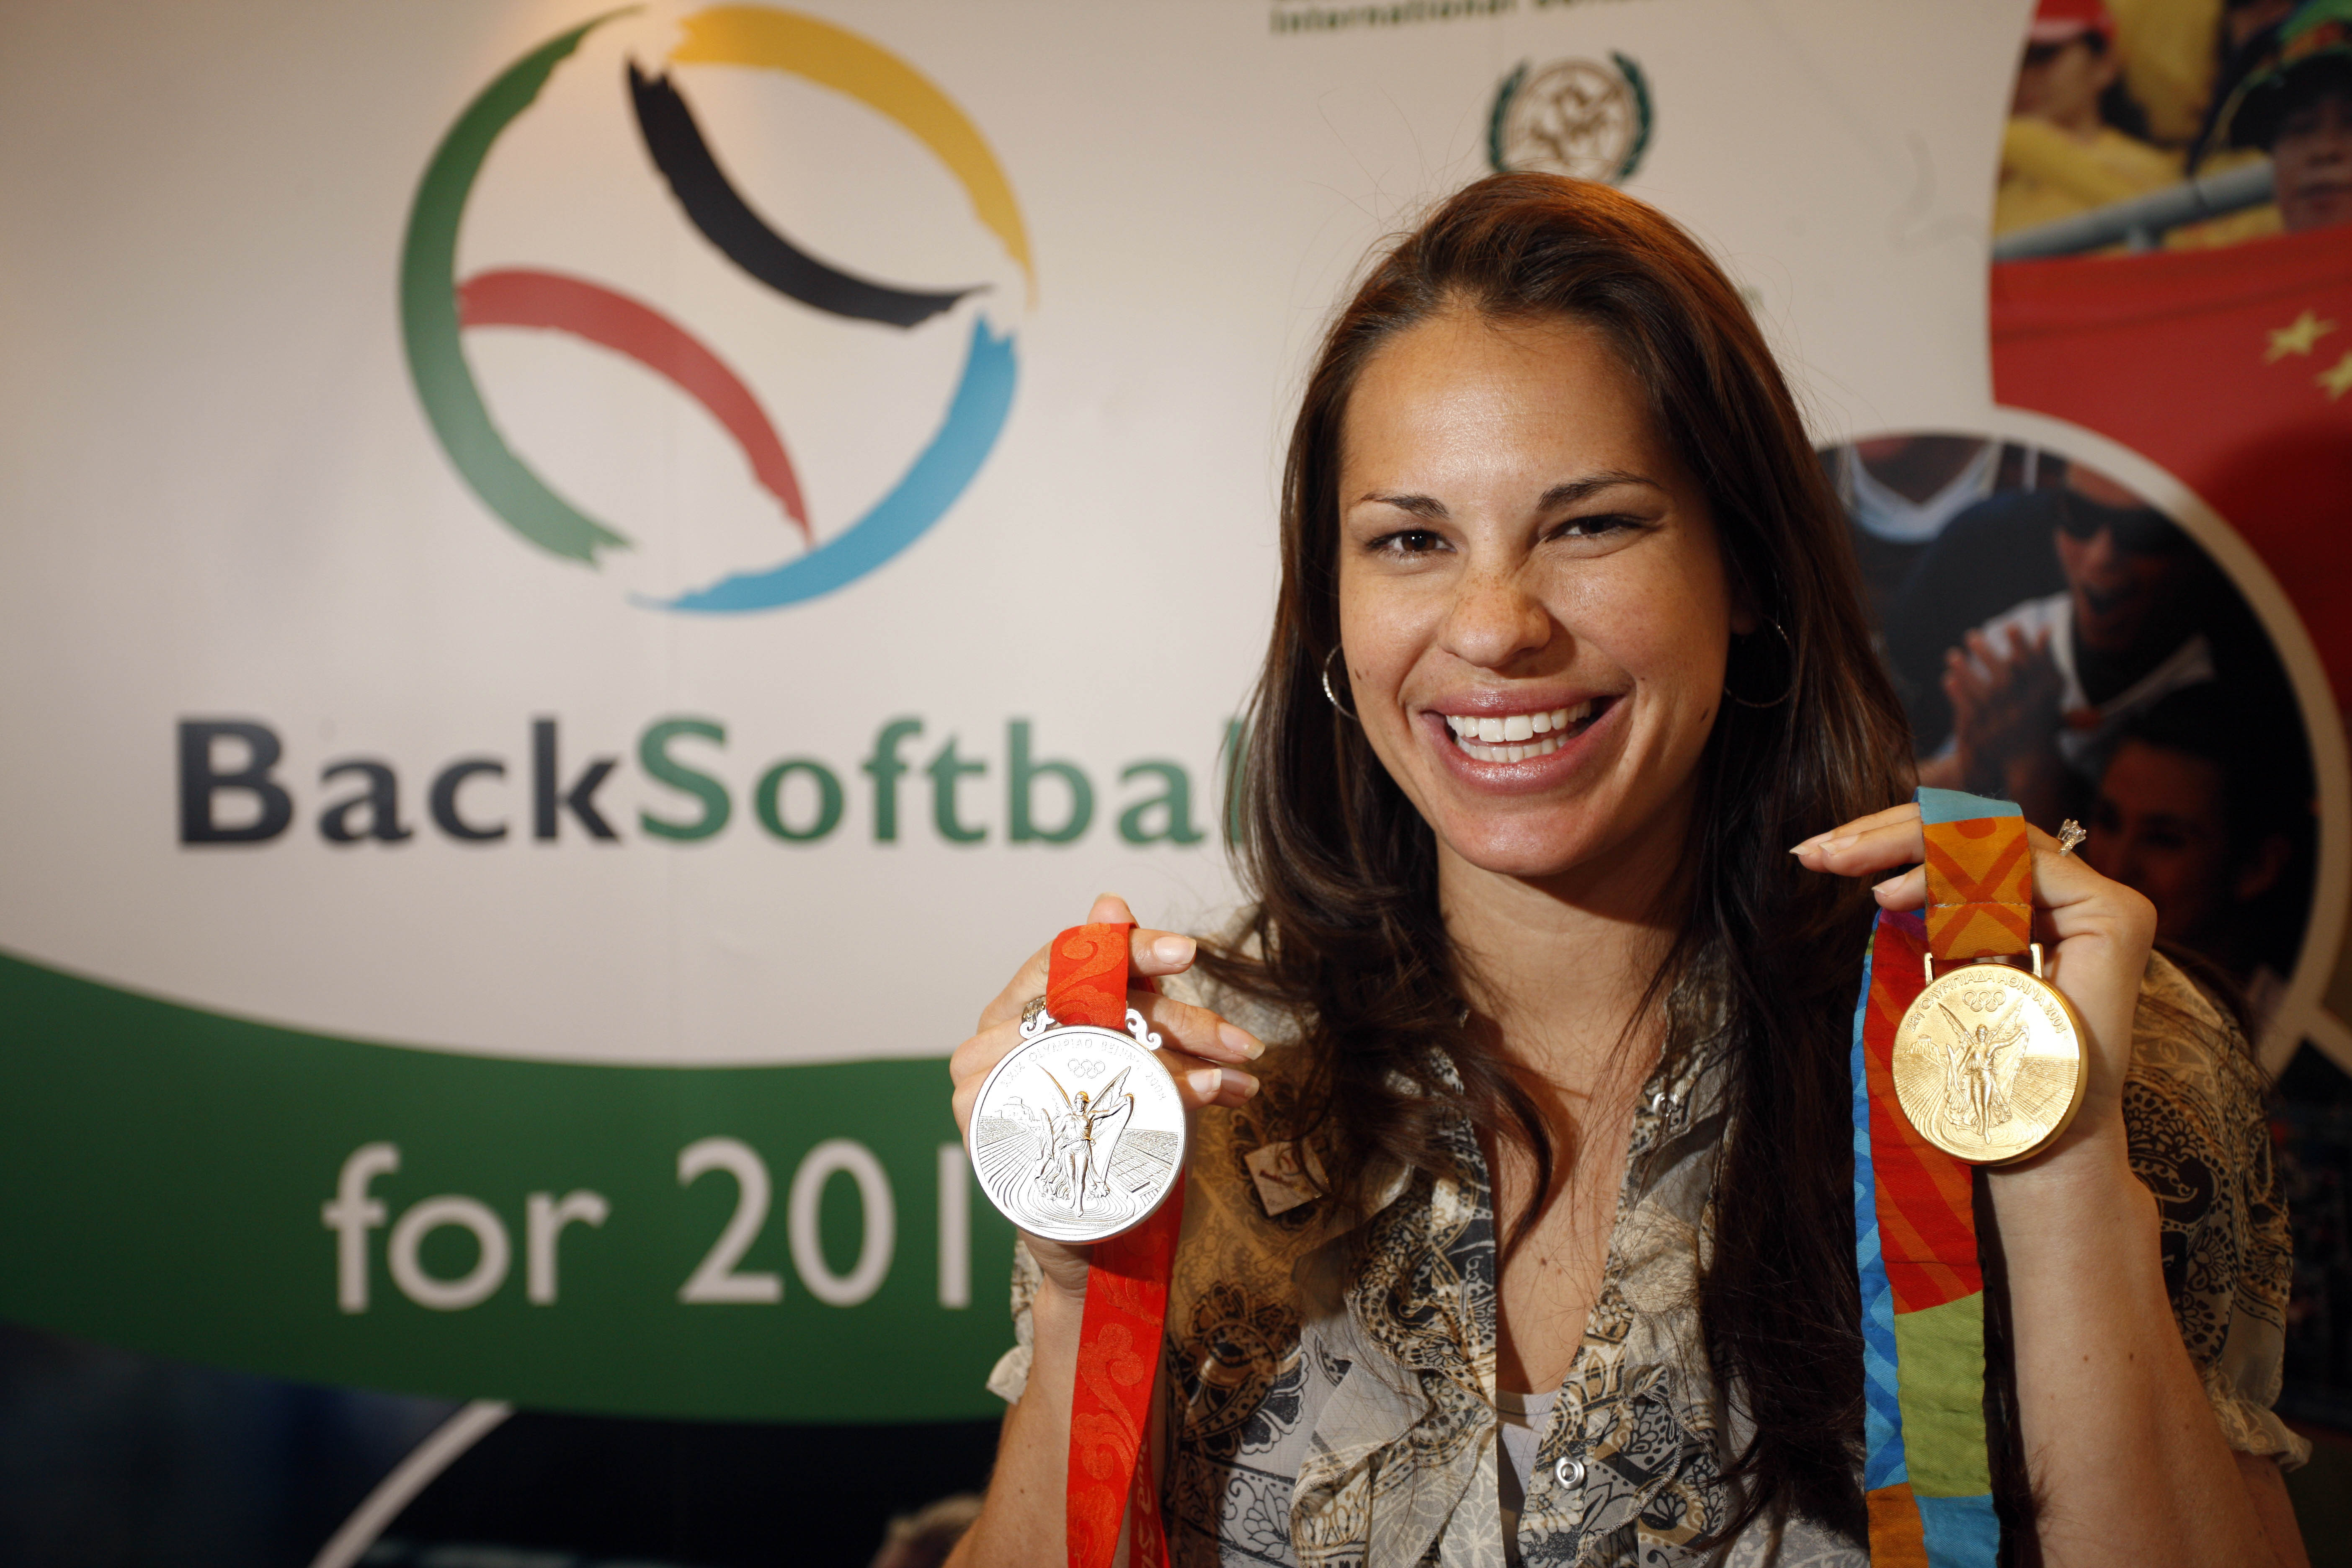 """FILE - This March 25, 2009 file photo shows Olympic softball medalist Jessica Mendoza, of the United States, smiling during the 2009 SportAccord gathering in Denver. Mendoza will stay permanently on """"Sunday Night Baseball"""" in a groundbreaking assignment f"""